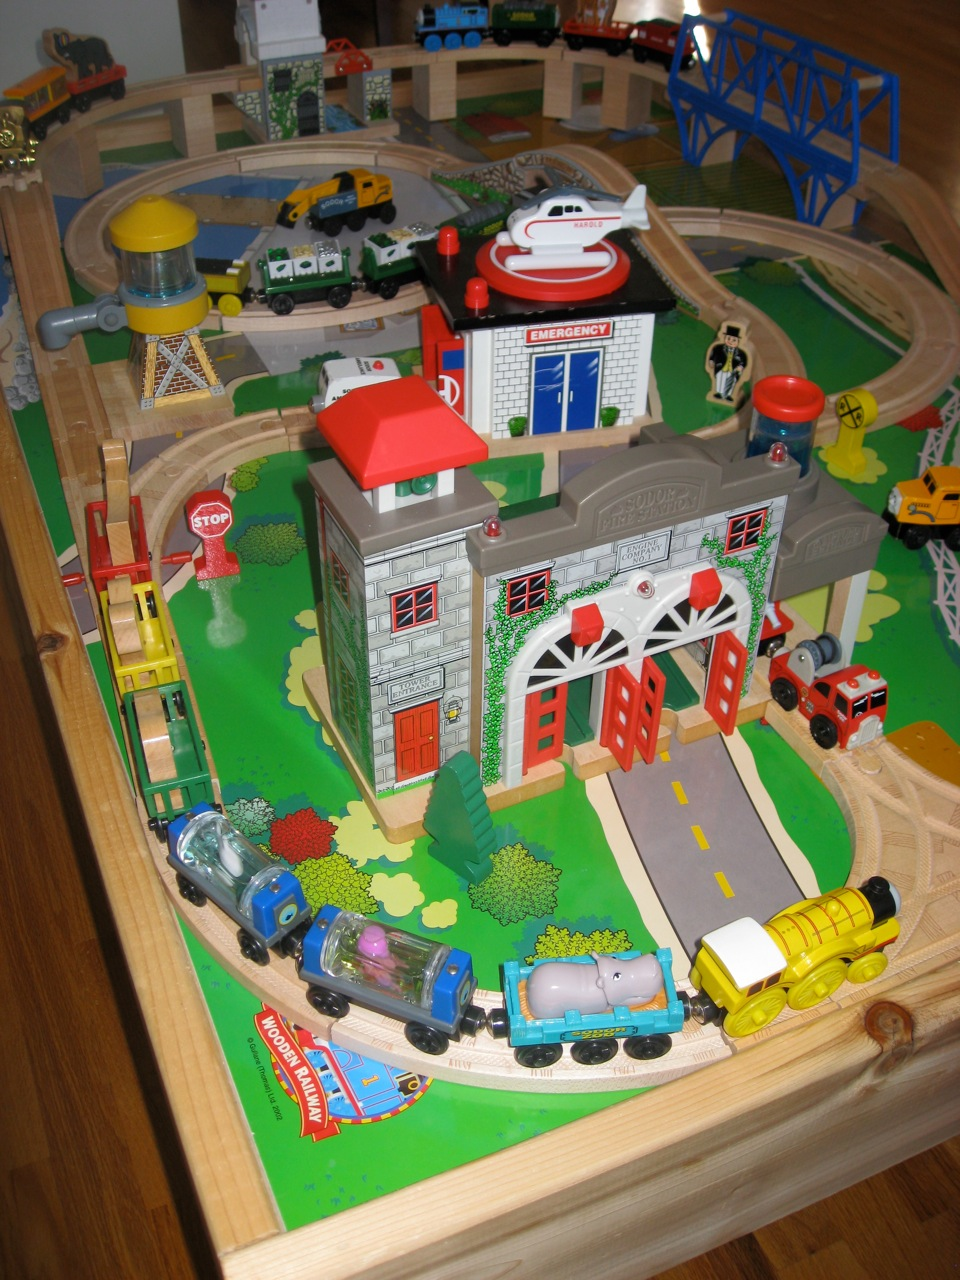 For Sale in Ottawa: Thomas the Train Table and set for Sale in Ottawa